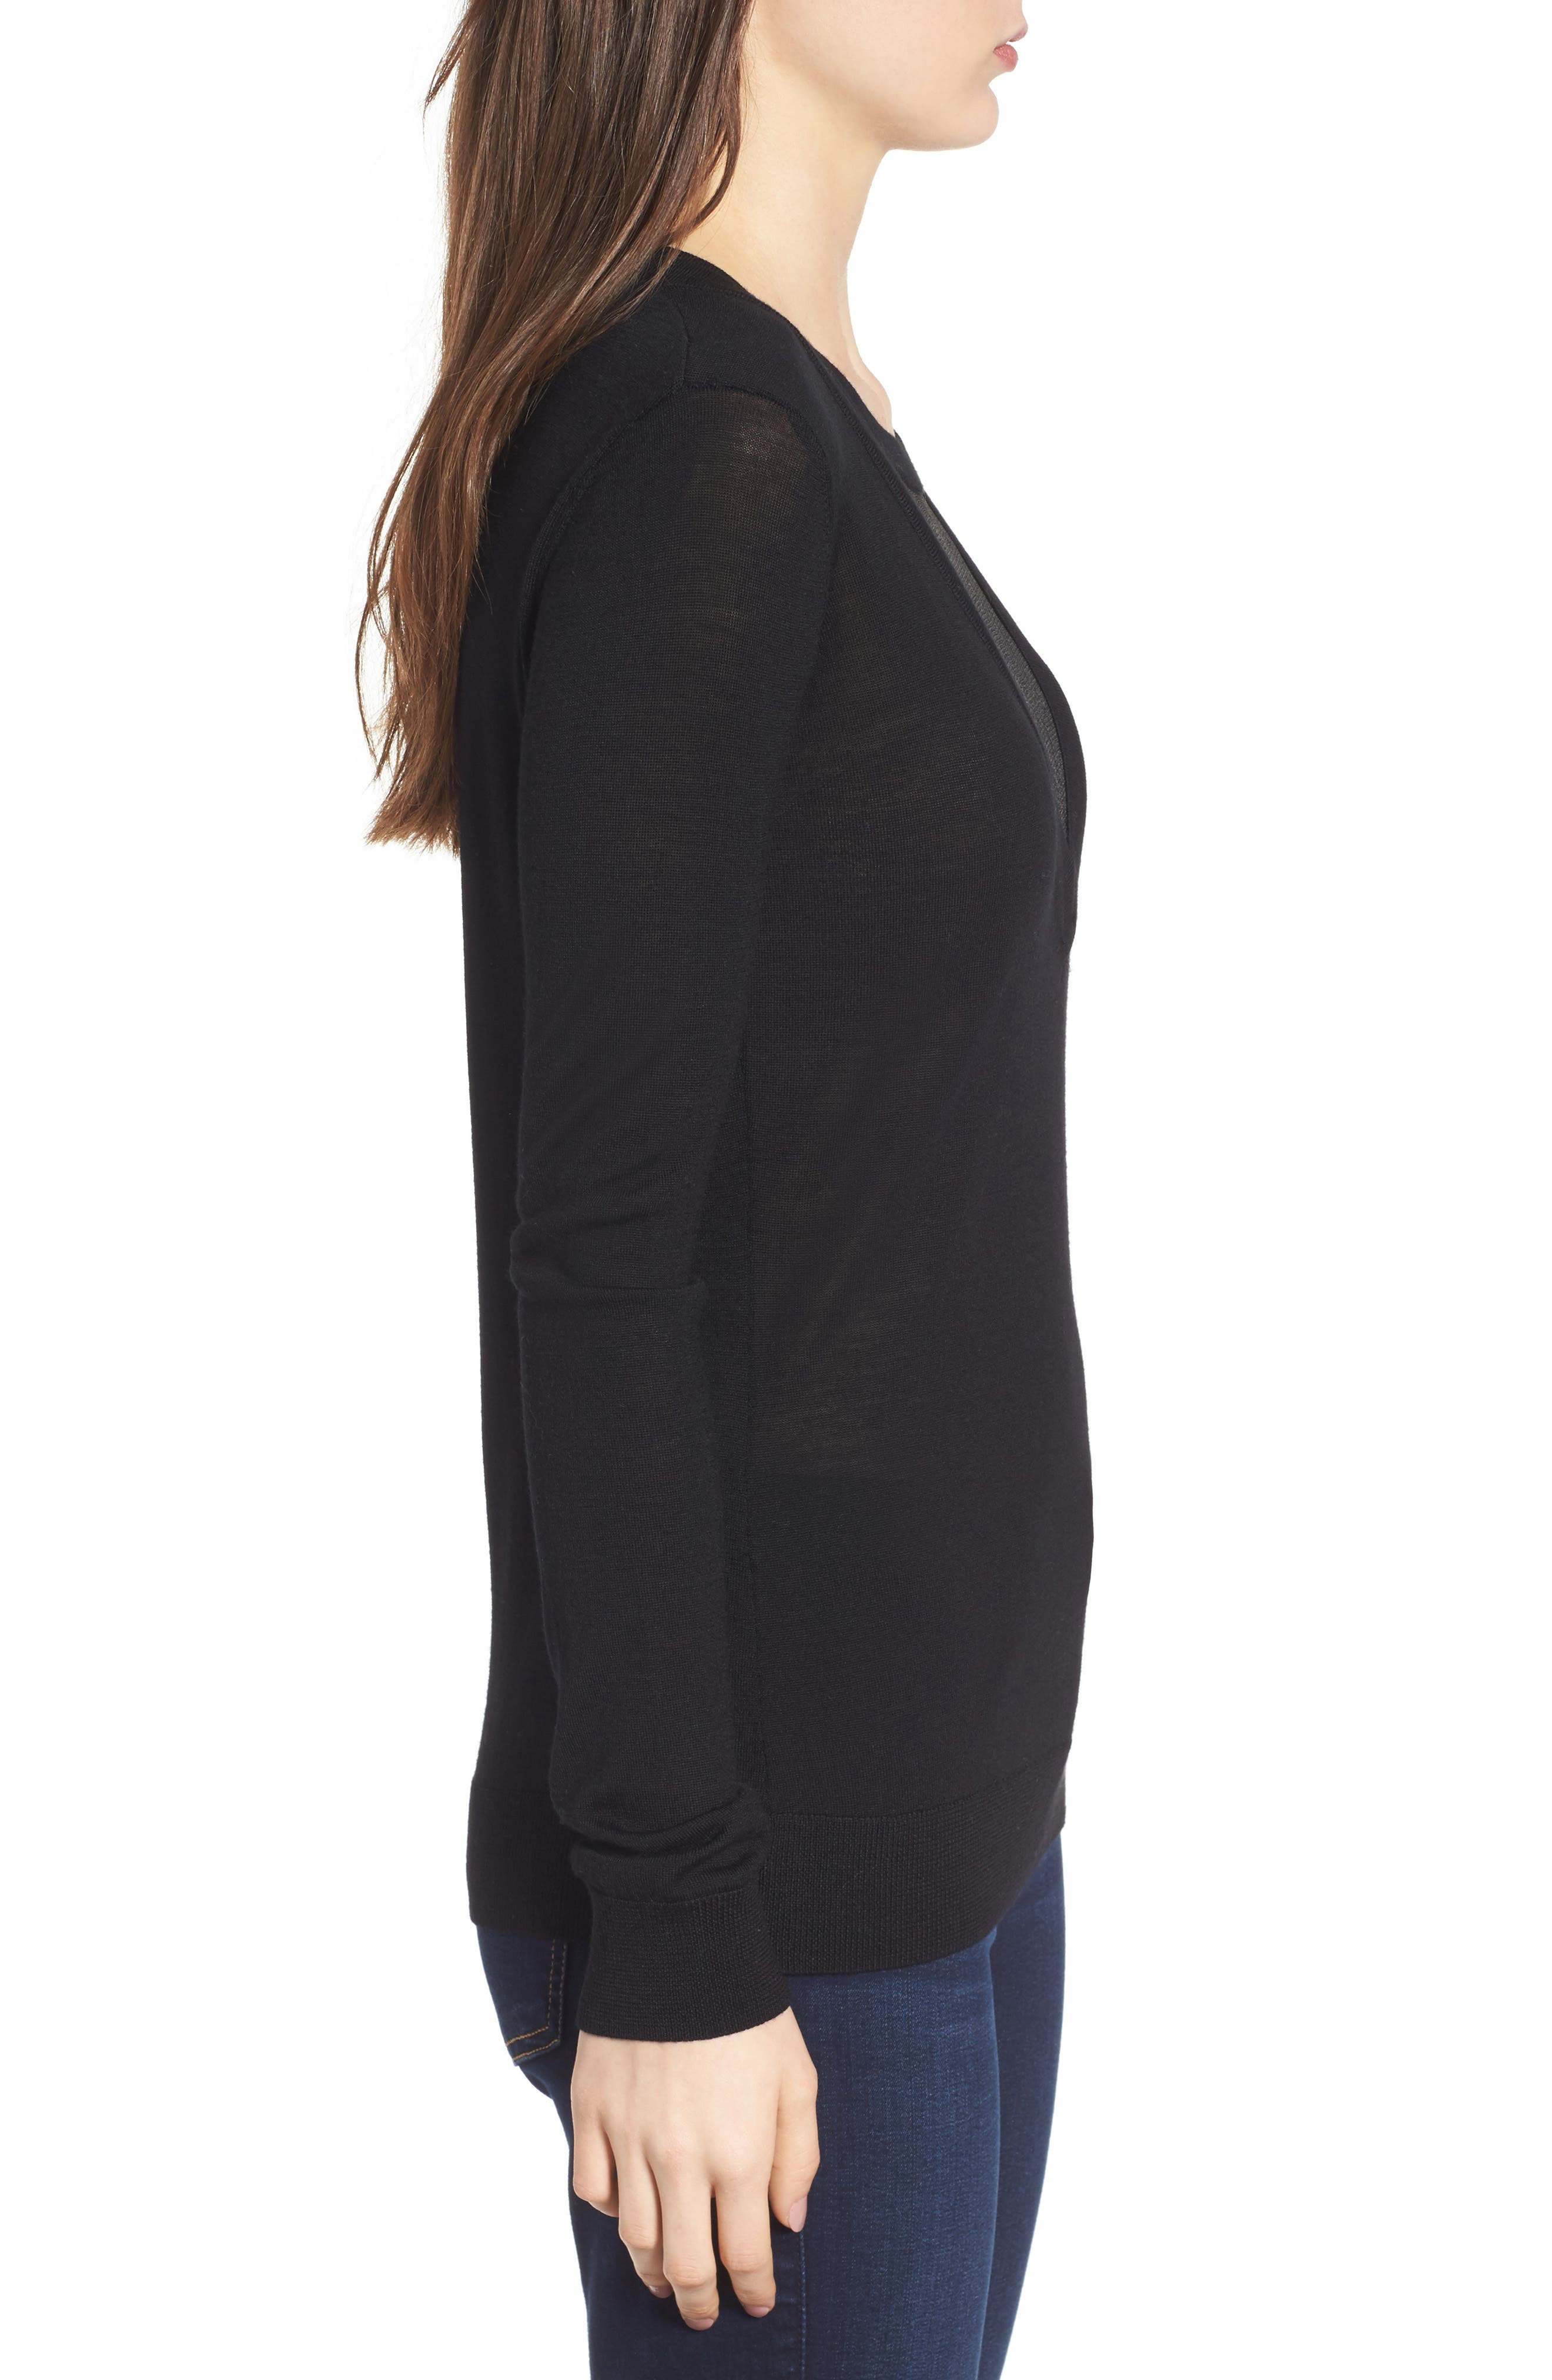 Chivalry Mesh Sweater,                             Alternate thumbnail 3, color,                             Black